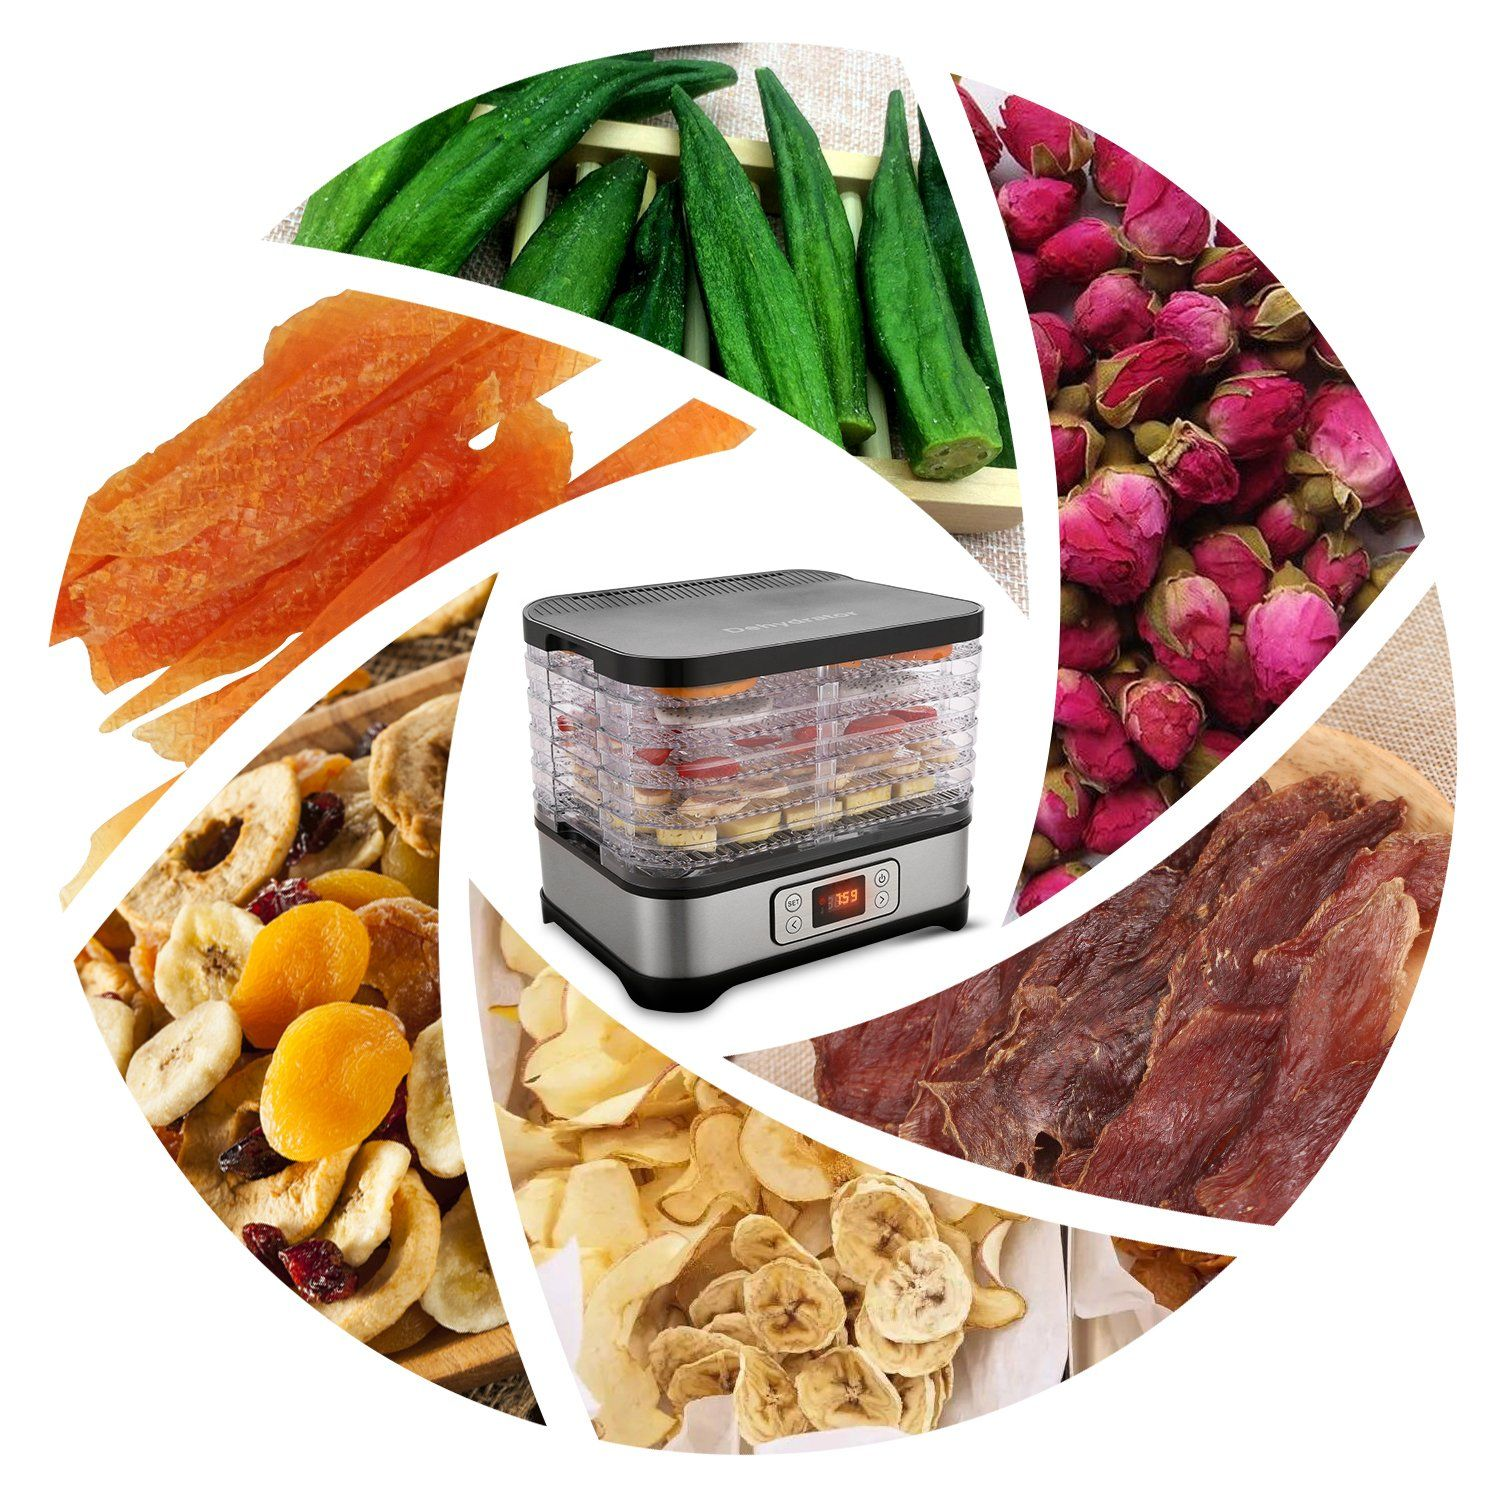 Electric food dehydrator stainless steel fruit dehydrater